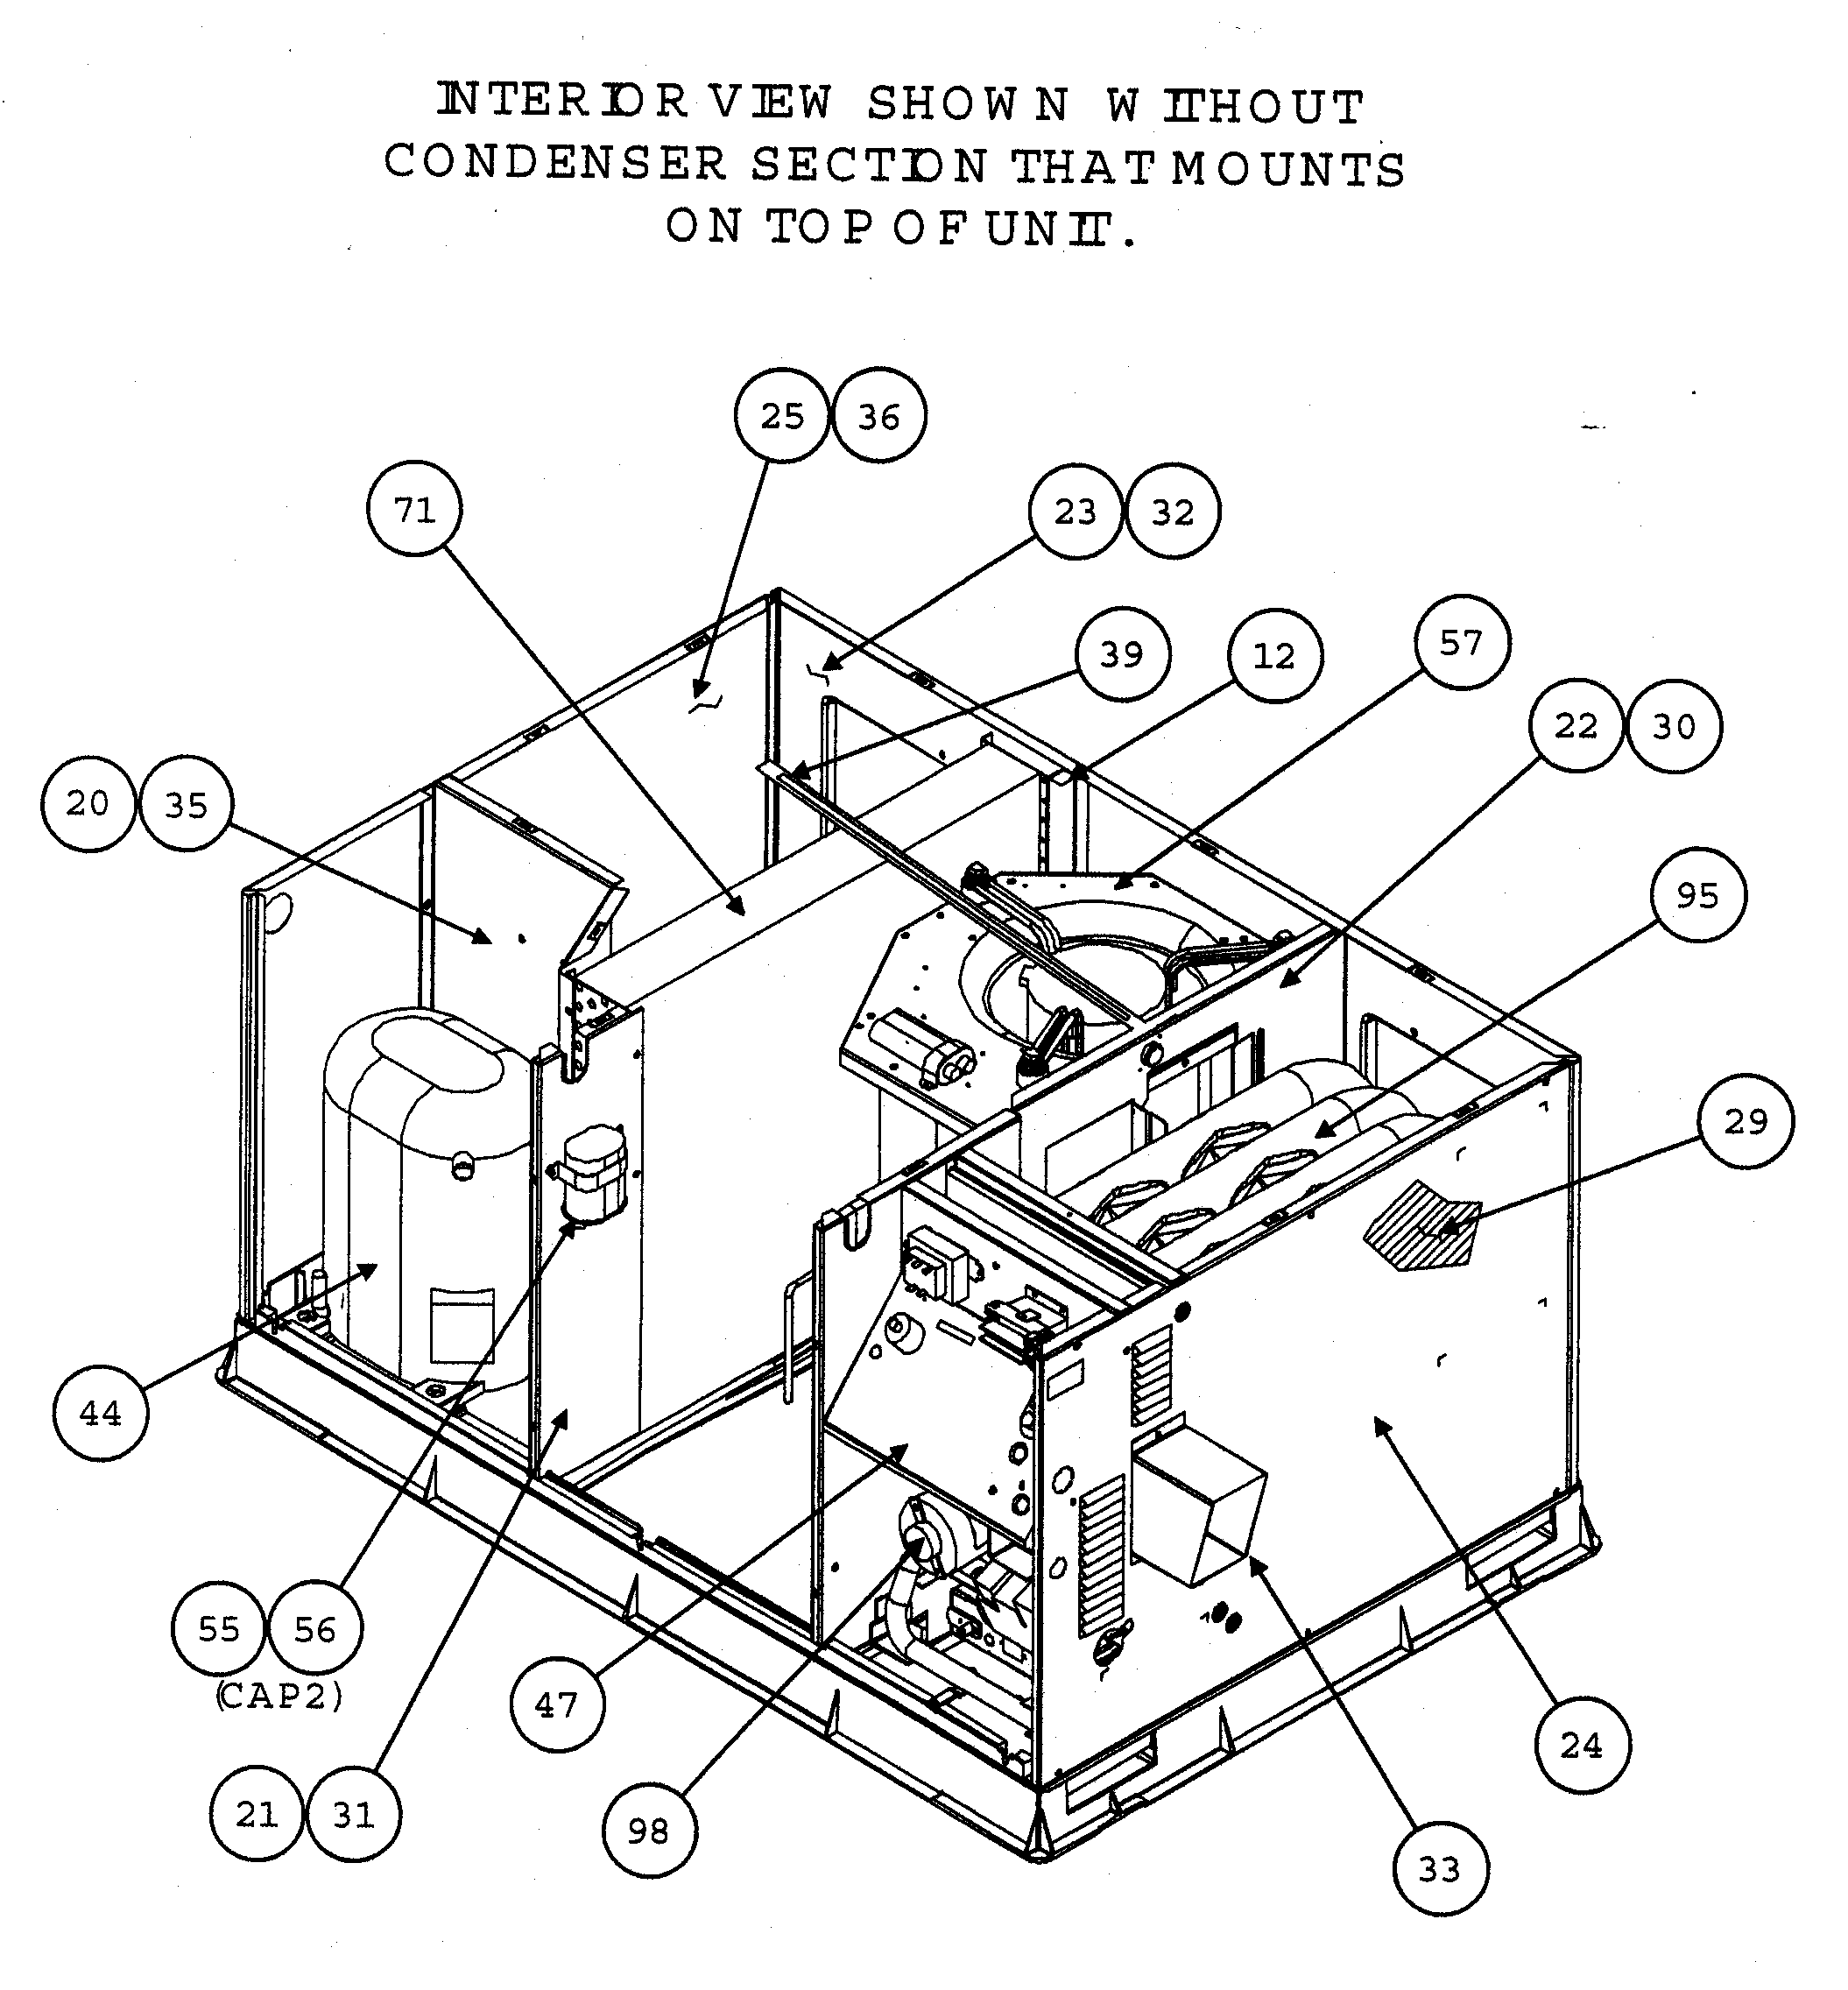 Rheem Condensing Unit Wiring Diagram as well Unique Benefits Split Air Conditioners also 2002 Civic C Trouble Shooting 65504 together with Hvac Wiring Diagrams Pdf furthermore Electrical Wiring Diagrams For Air Conditioning. on condenser unit